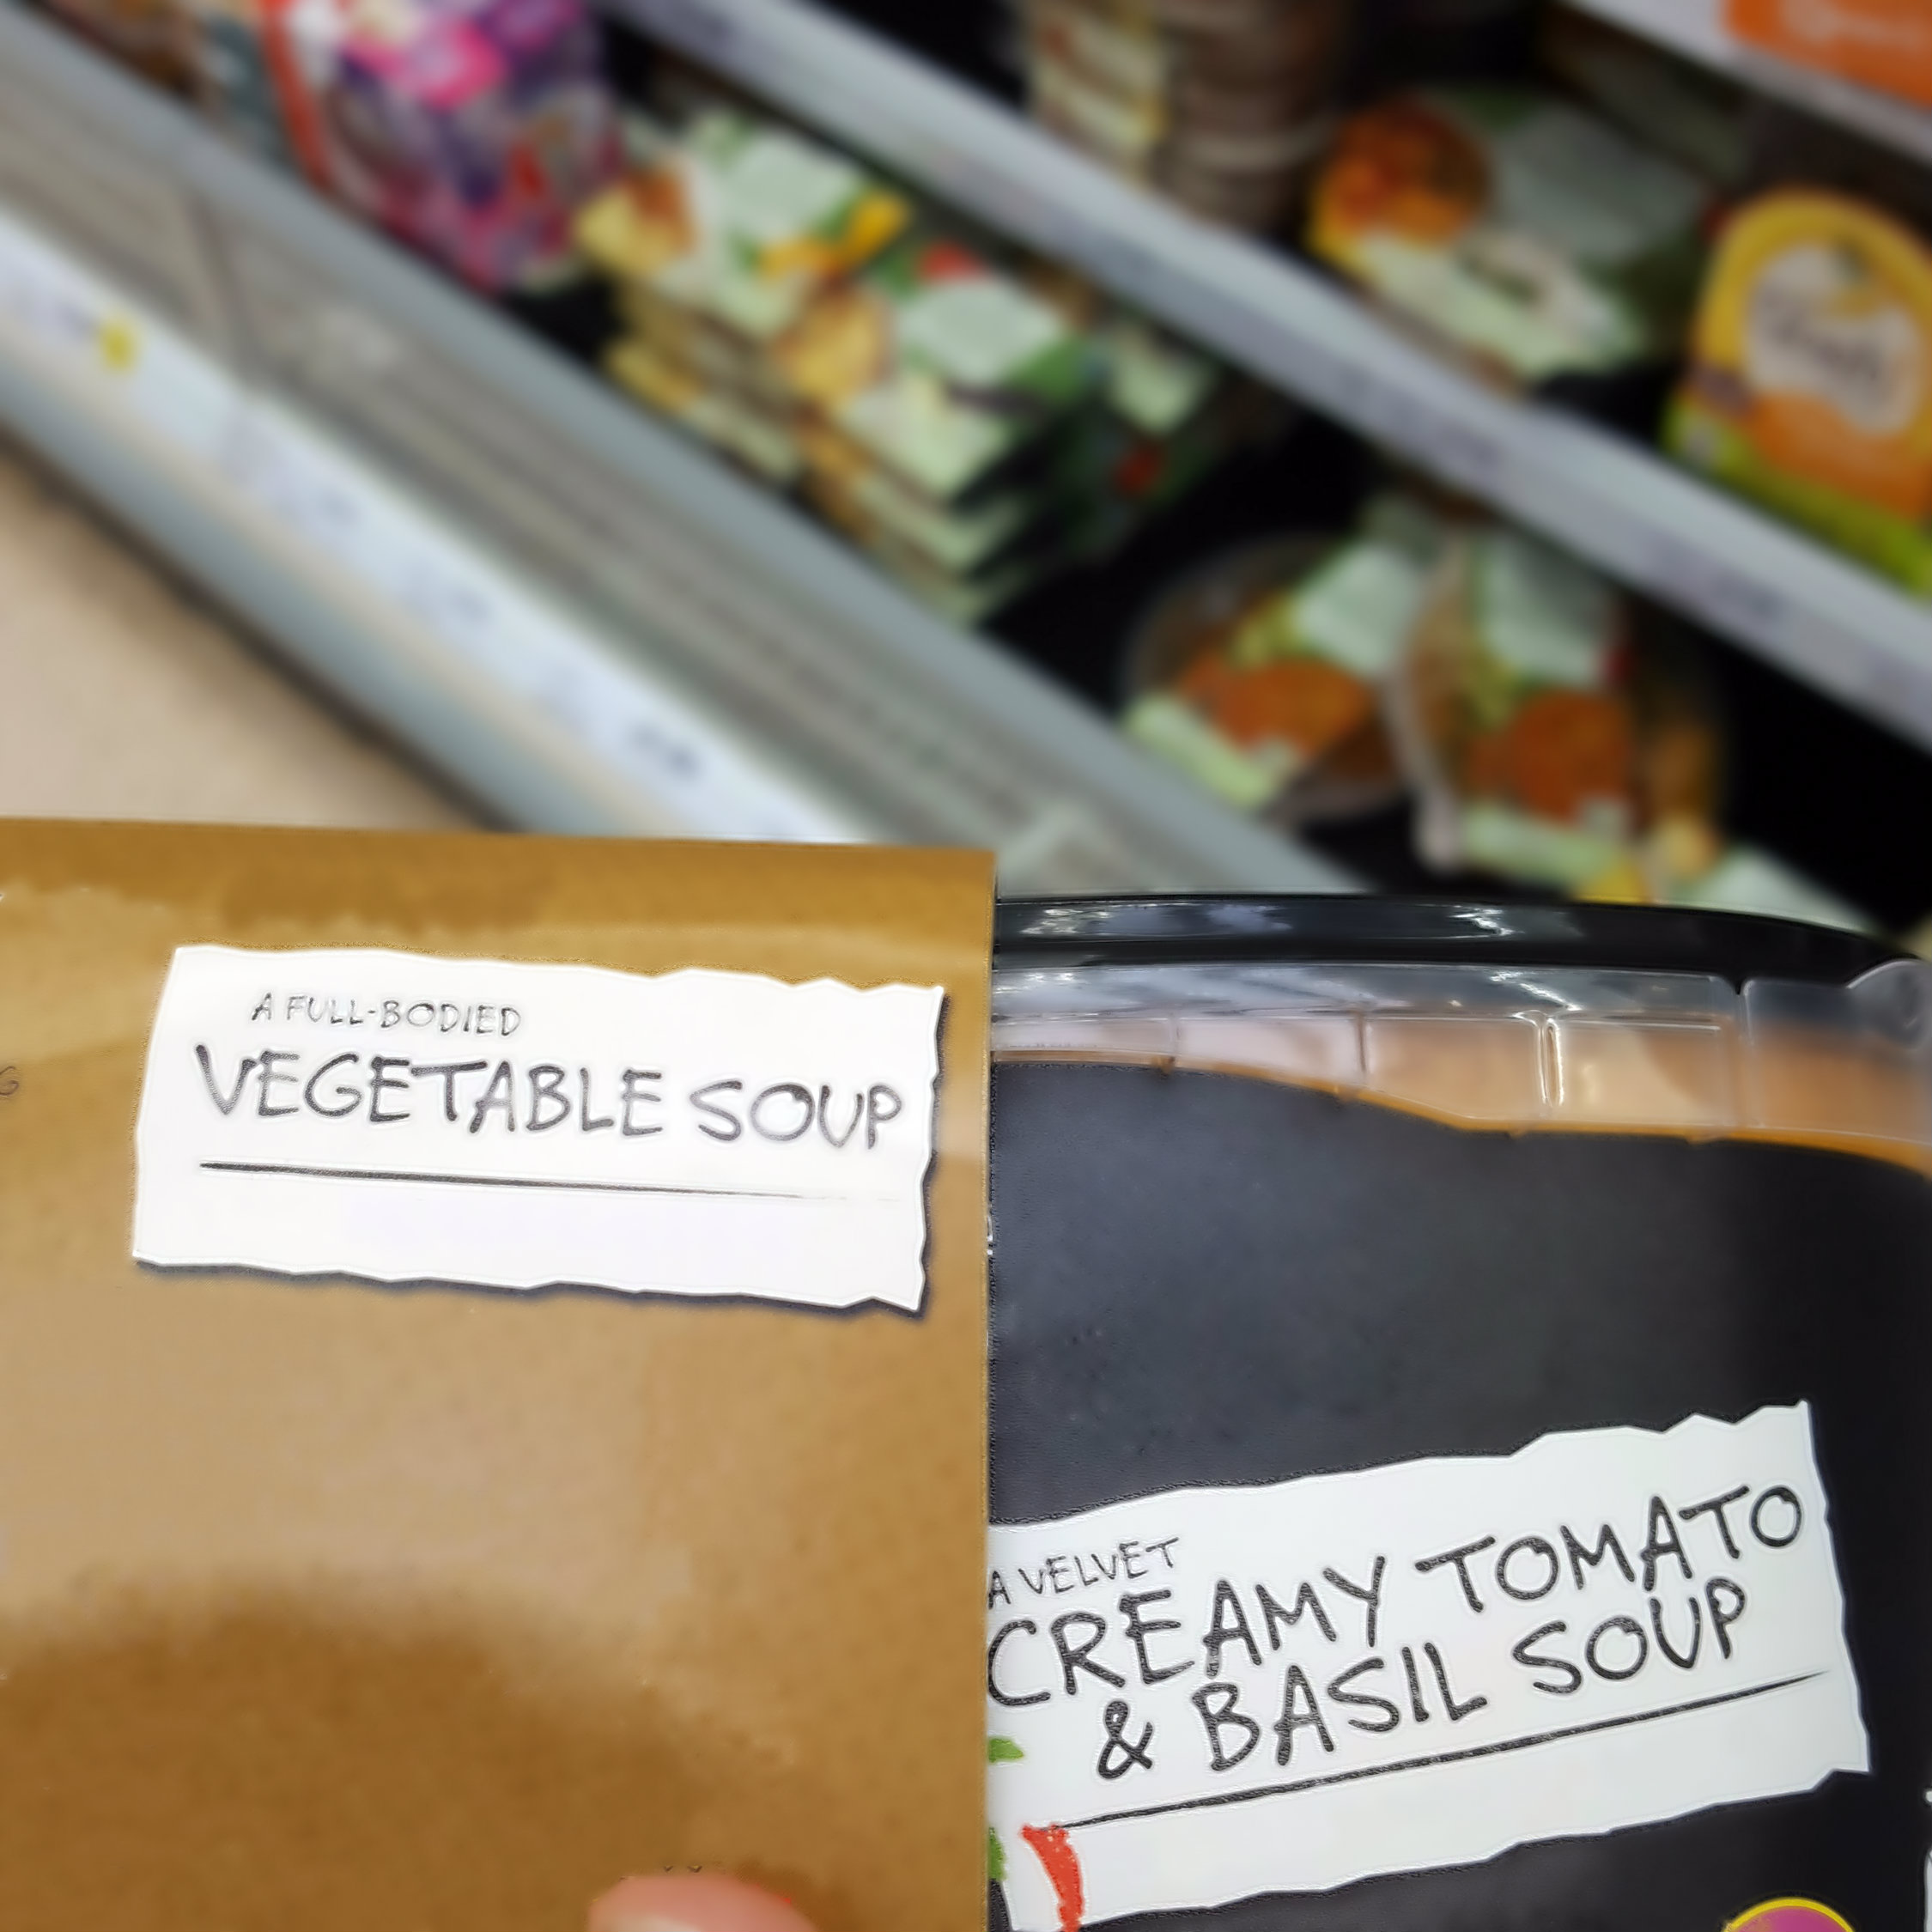 An example of a tomato soup incorrectly packaged in a vegetable soup sleeve.